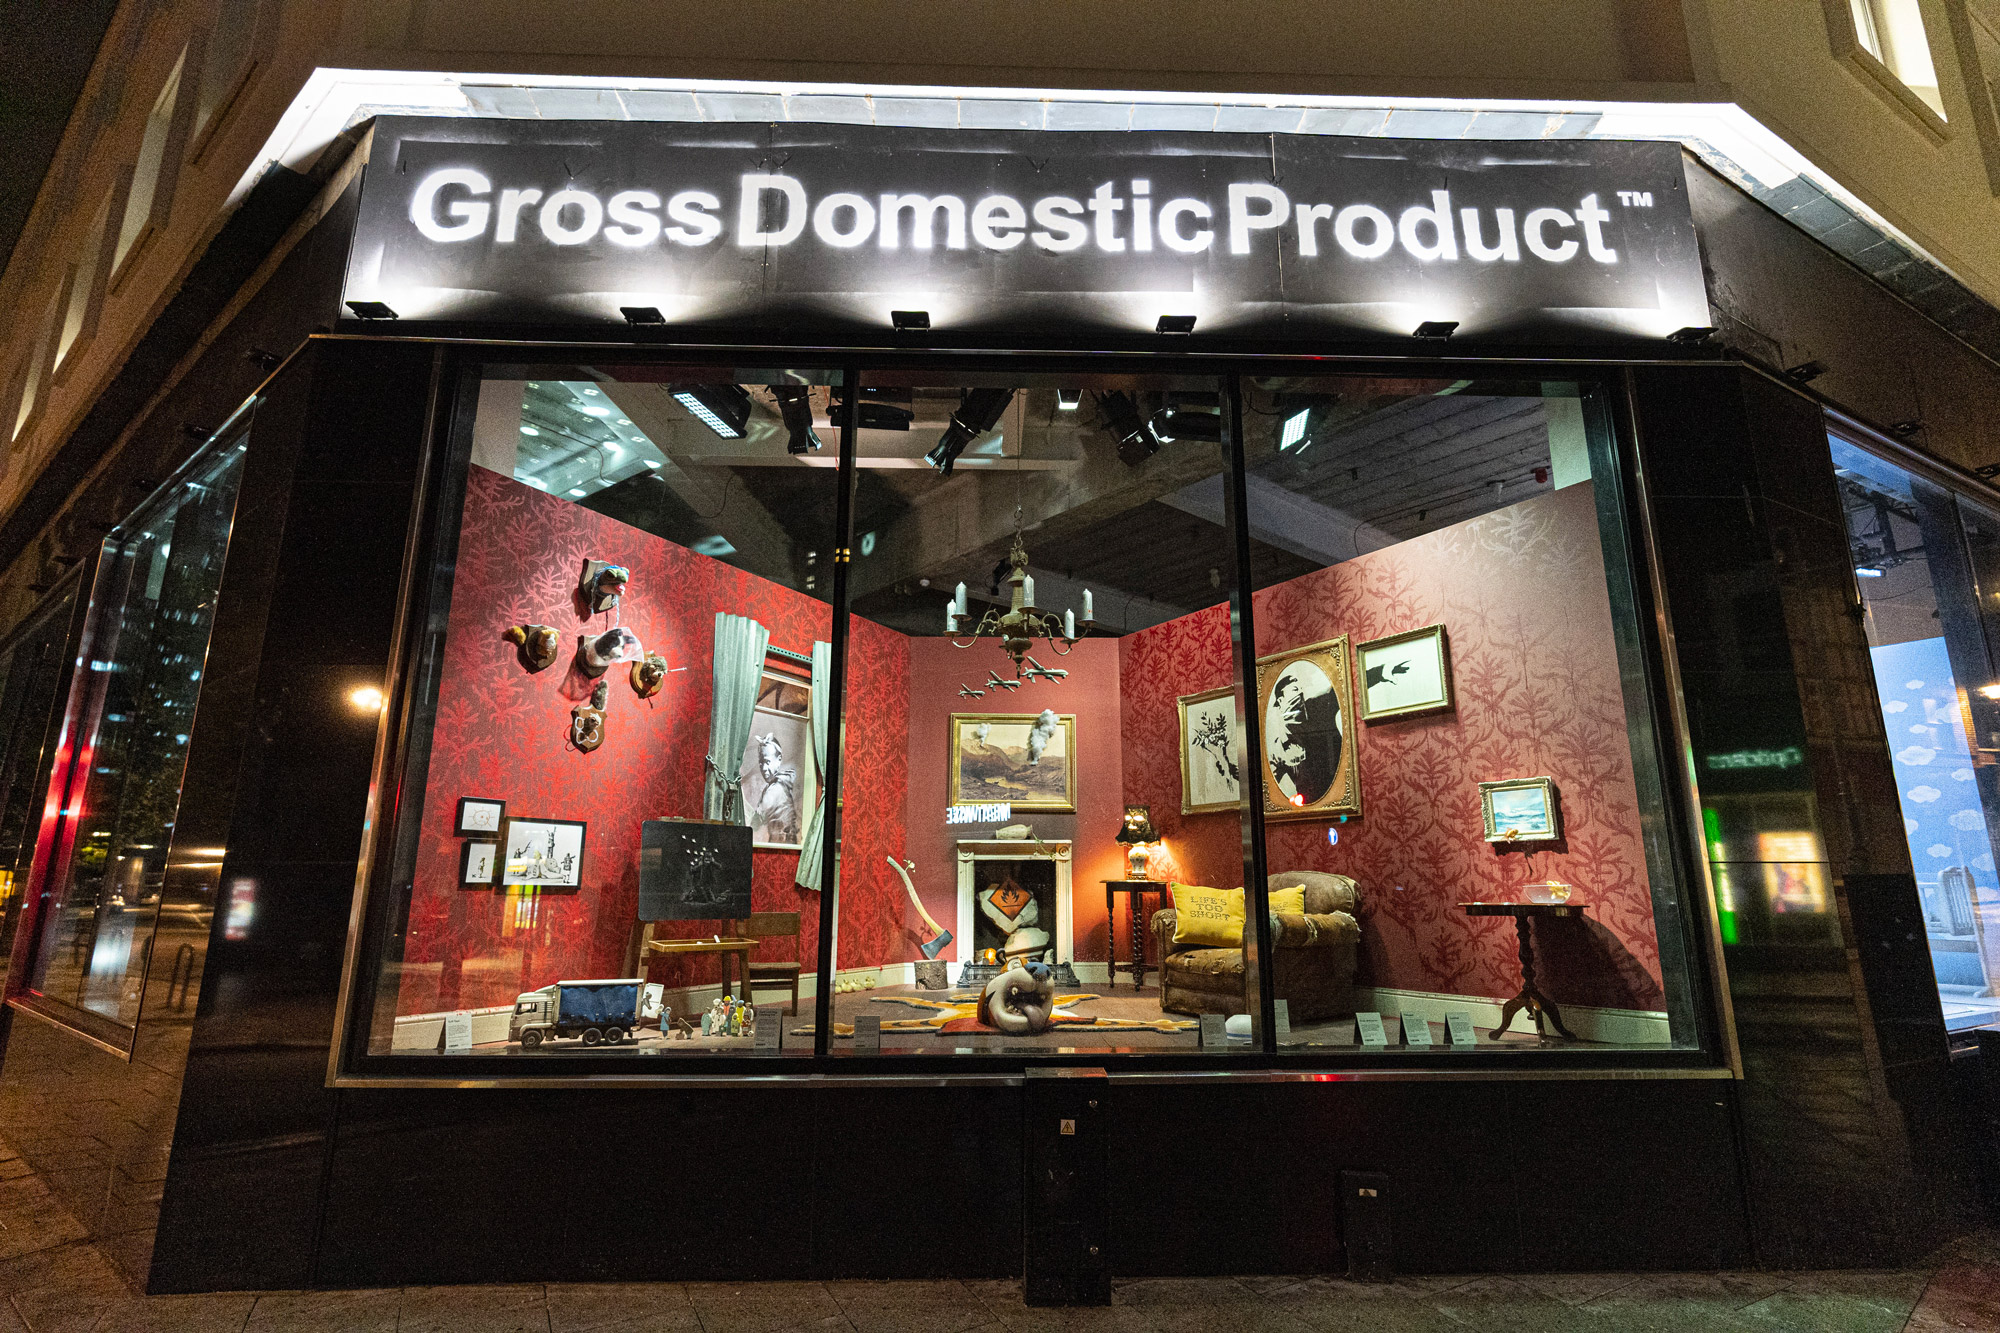 gross domestic product shop